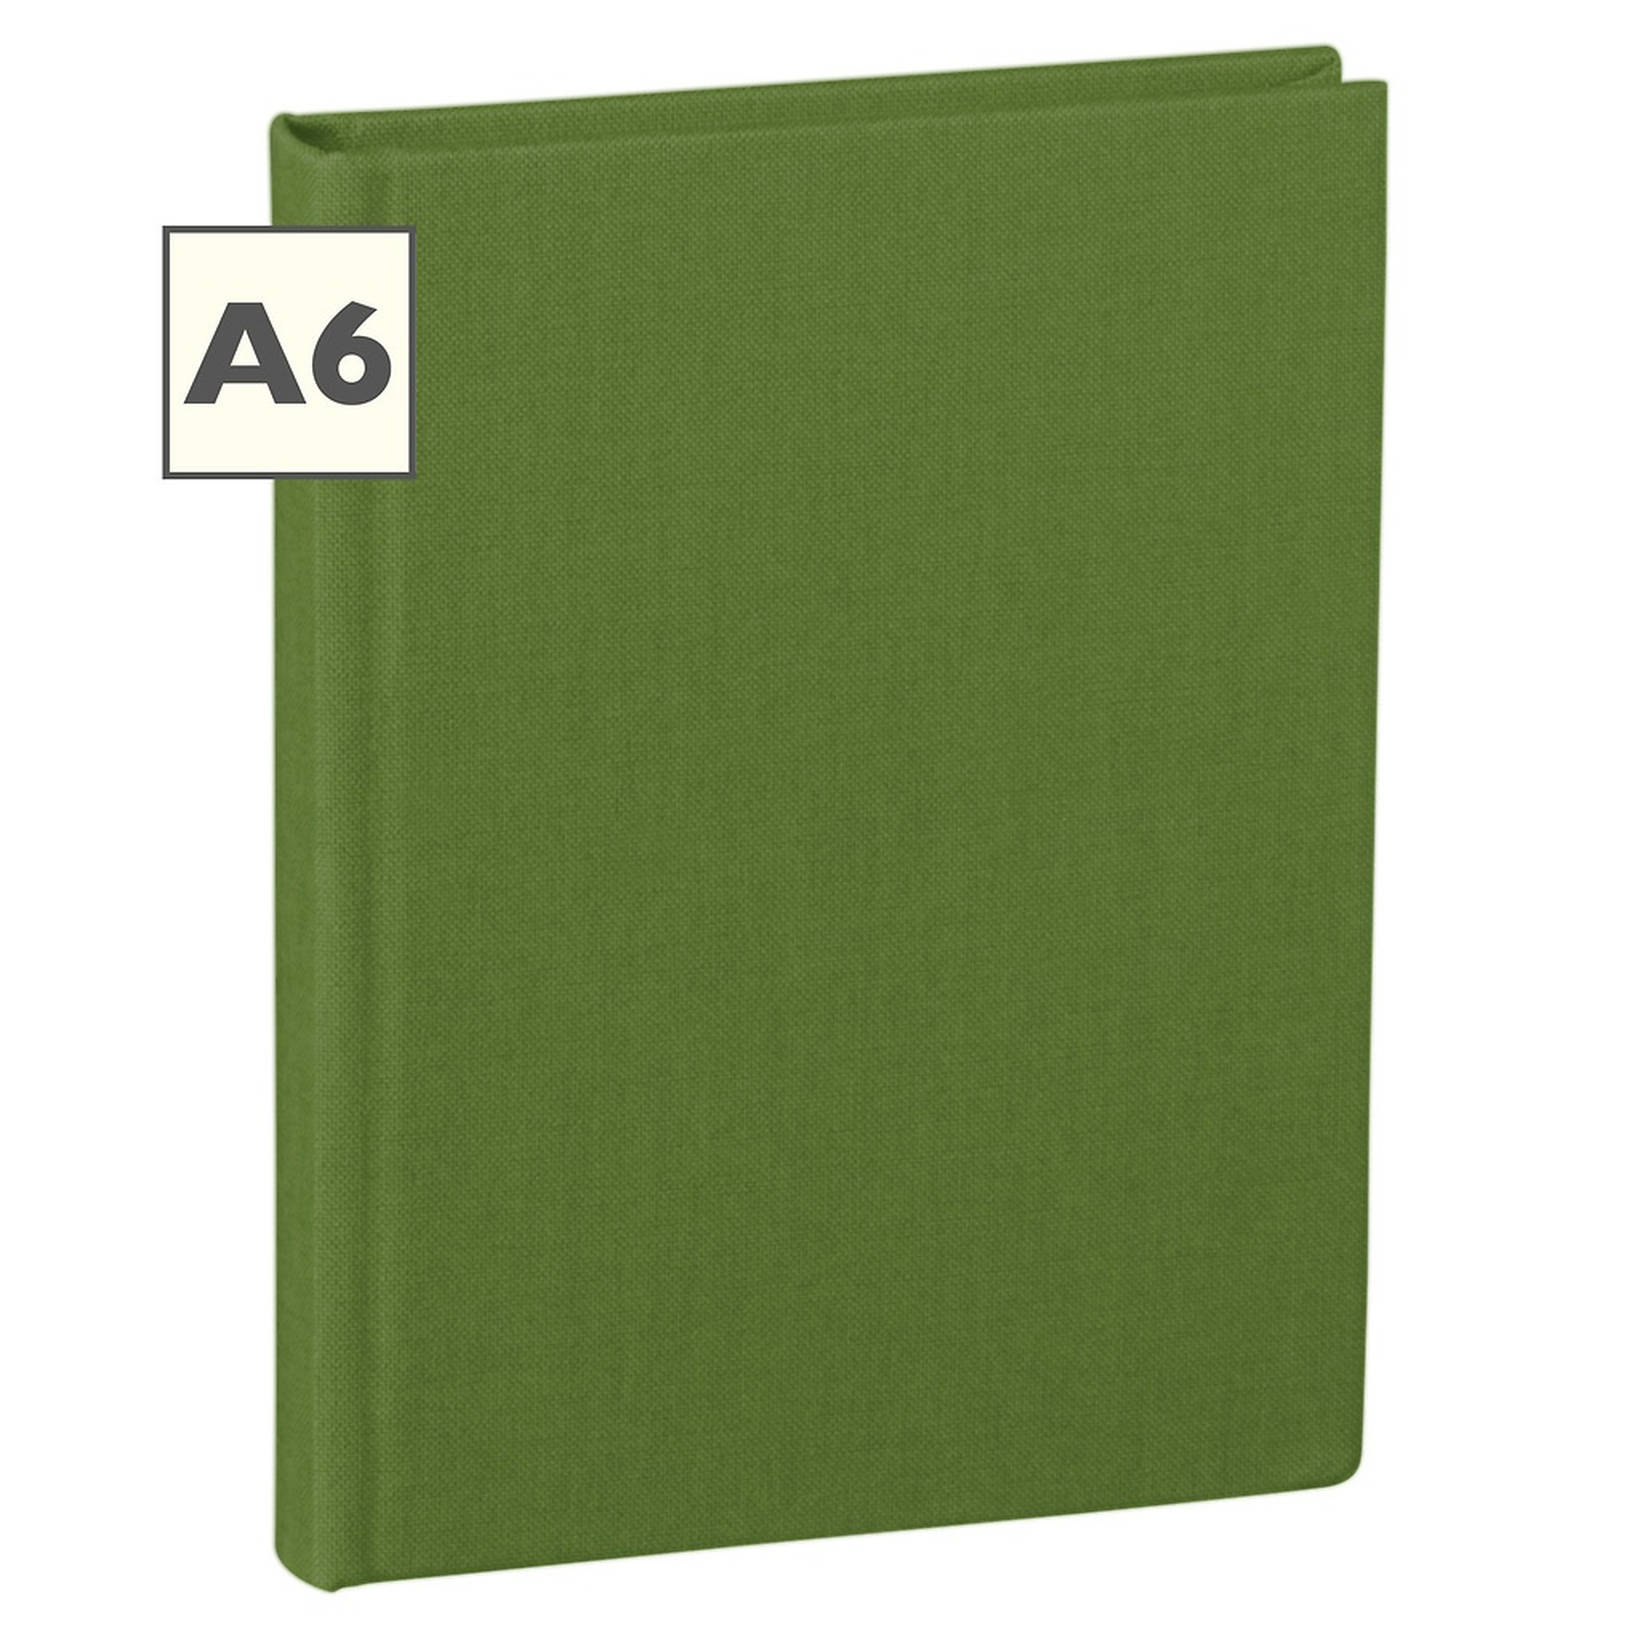 Notebook Classic A6 With Linen Binding, Ruled, Irish